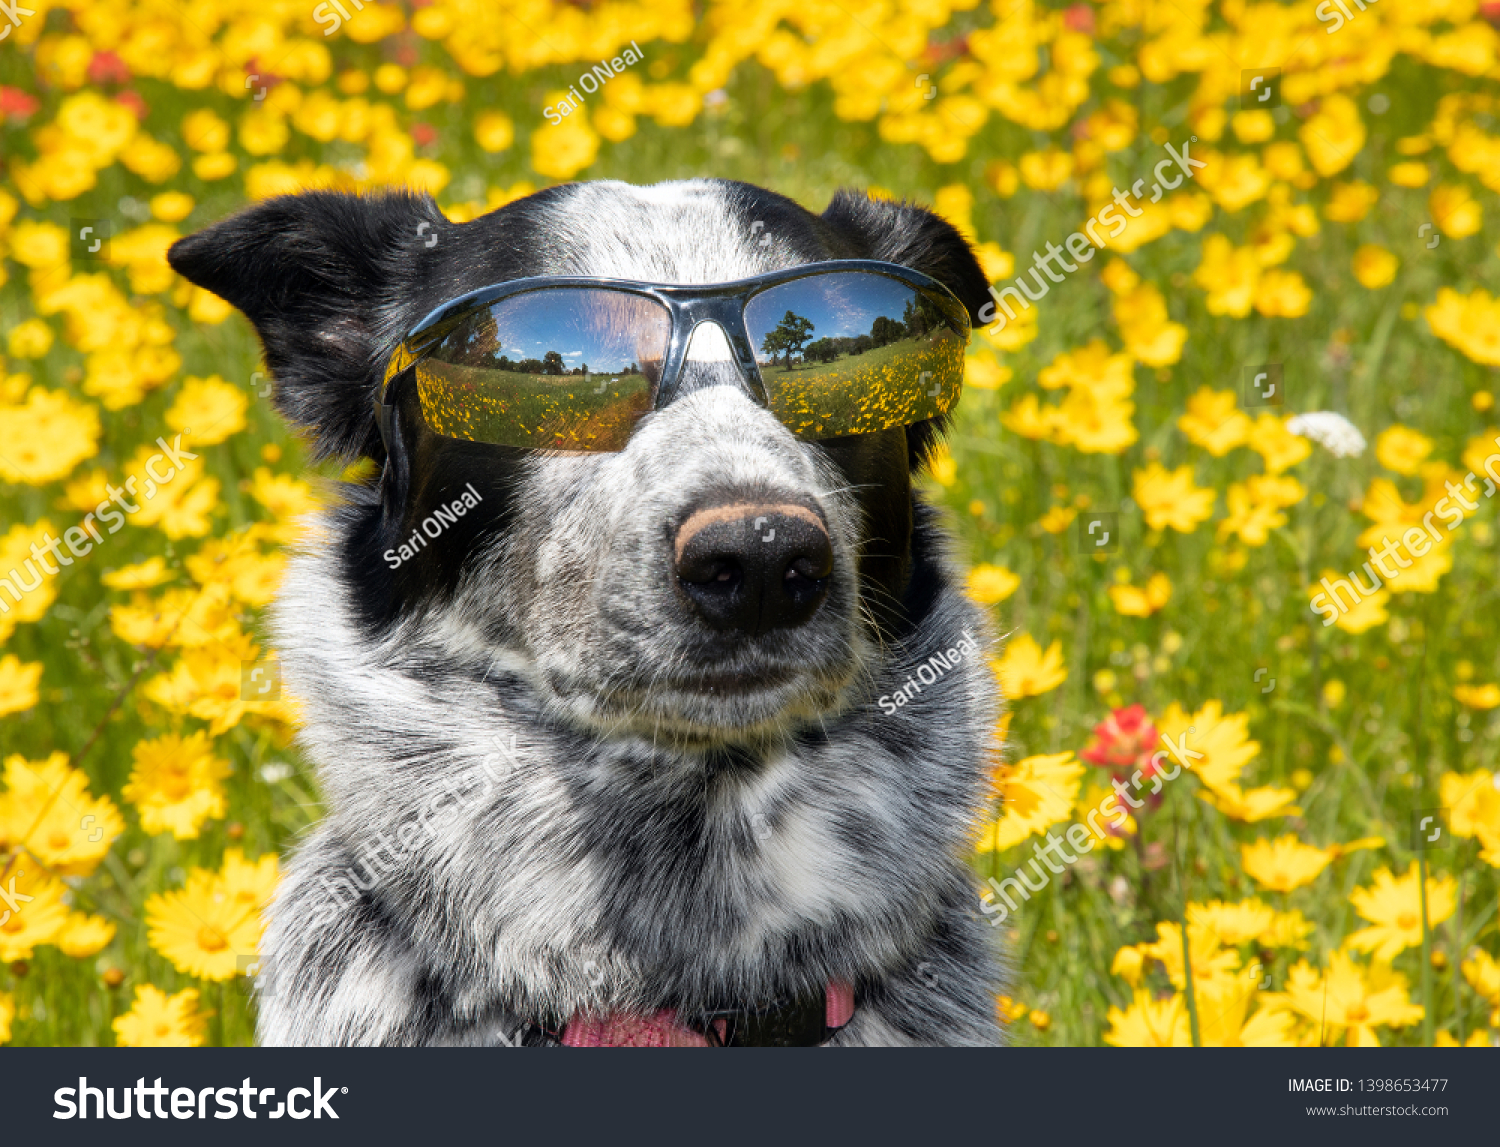 stock-photo-cool-black-and-white-dog-wea